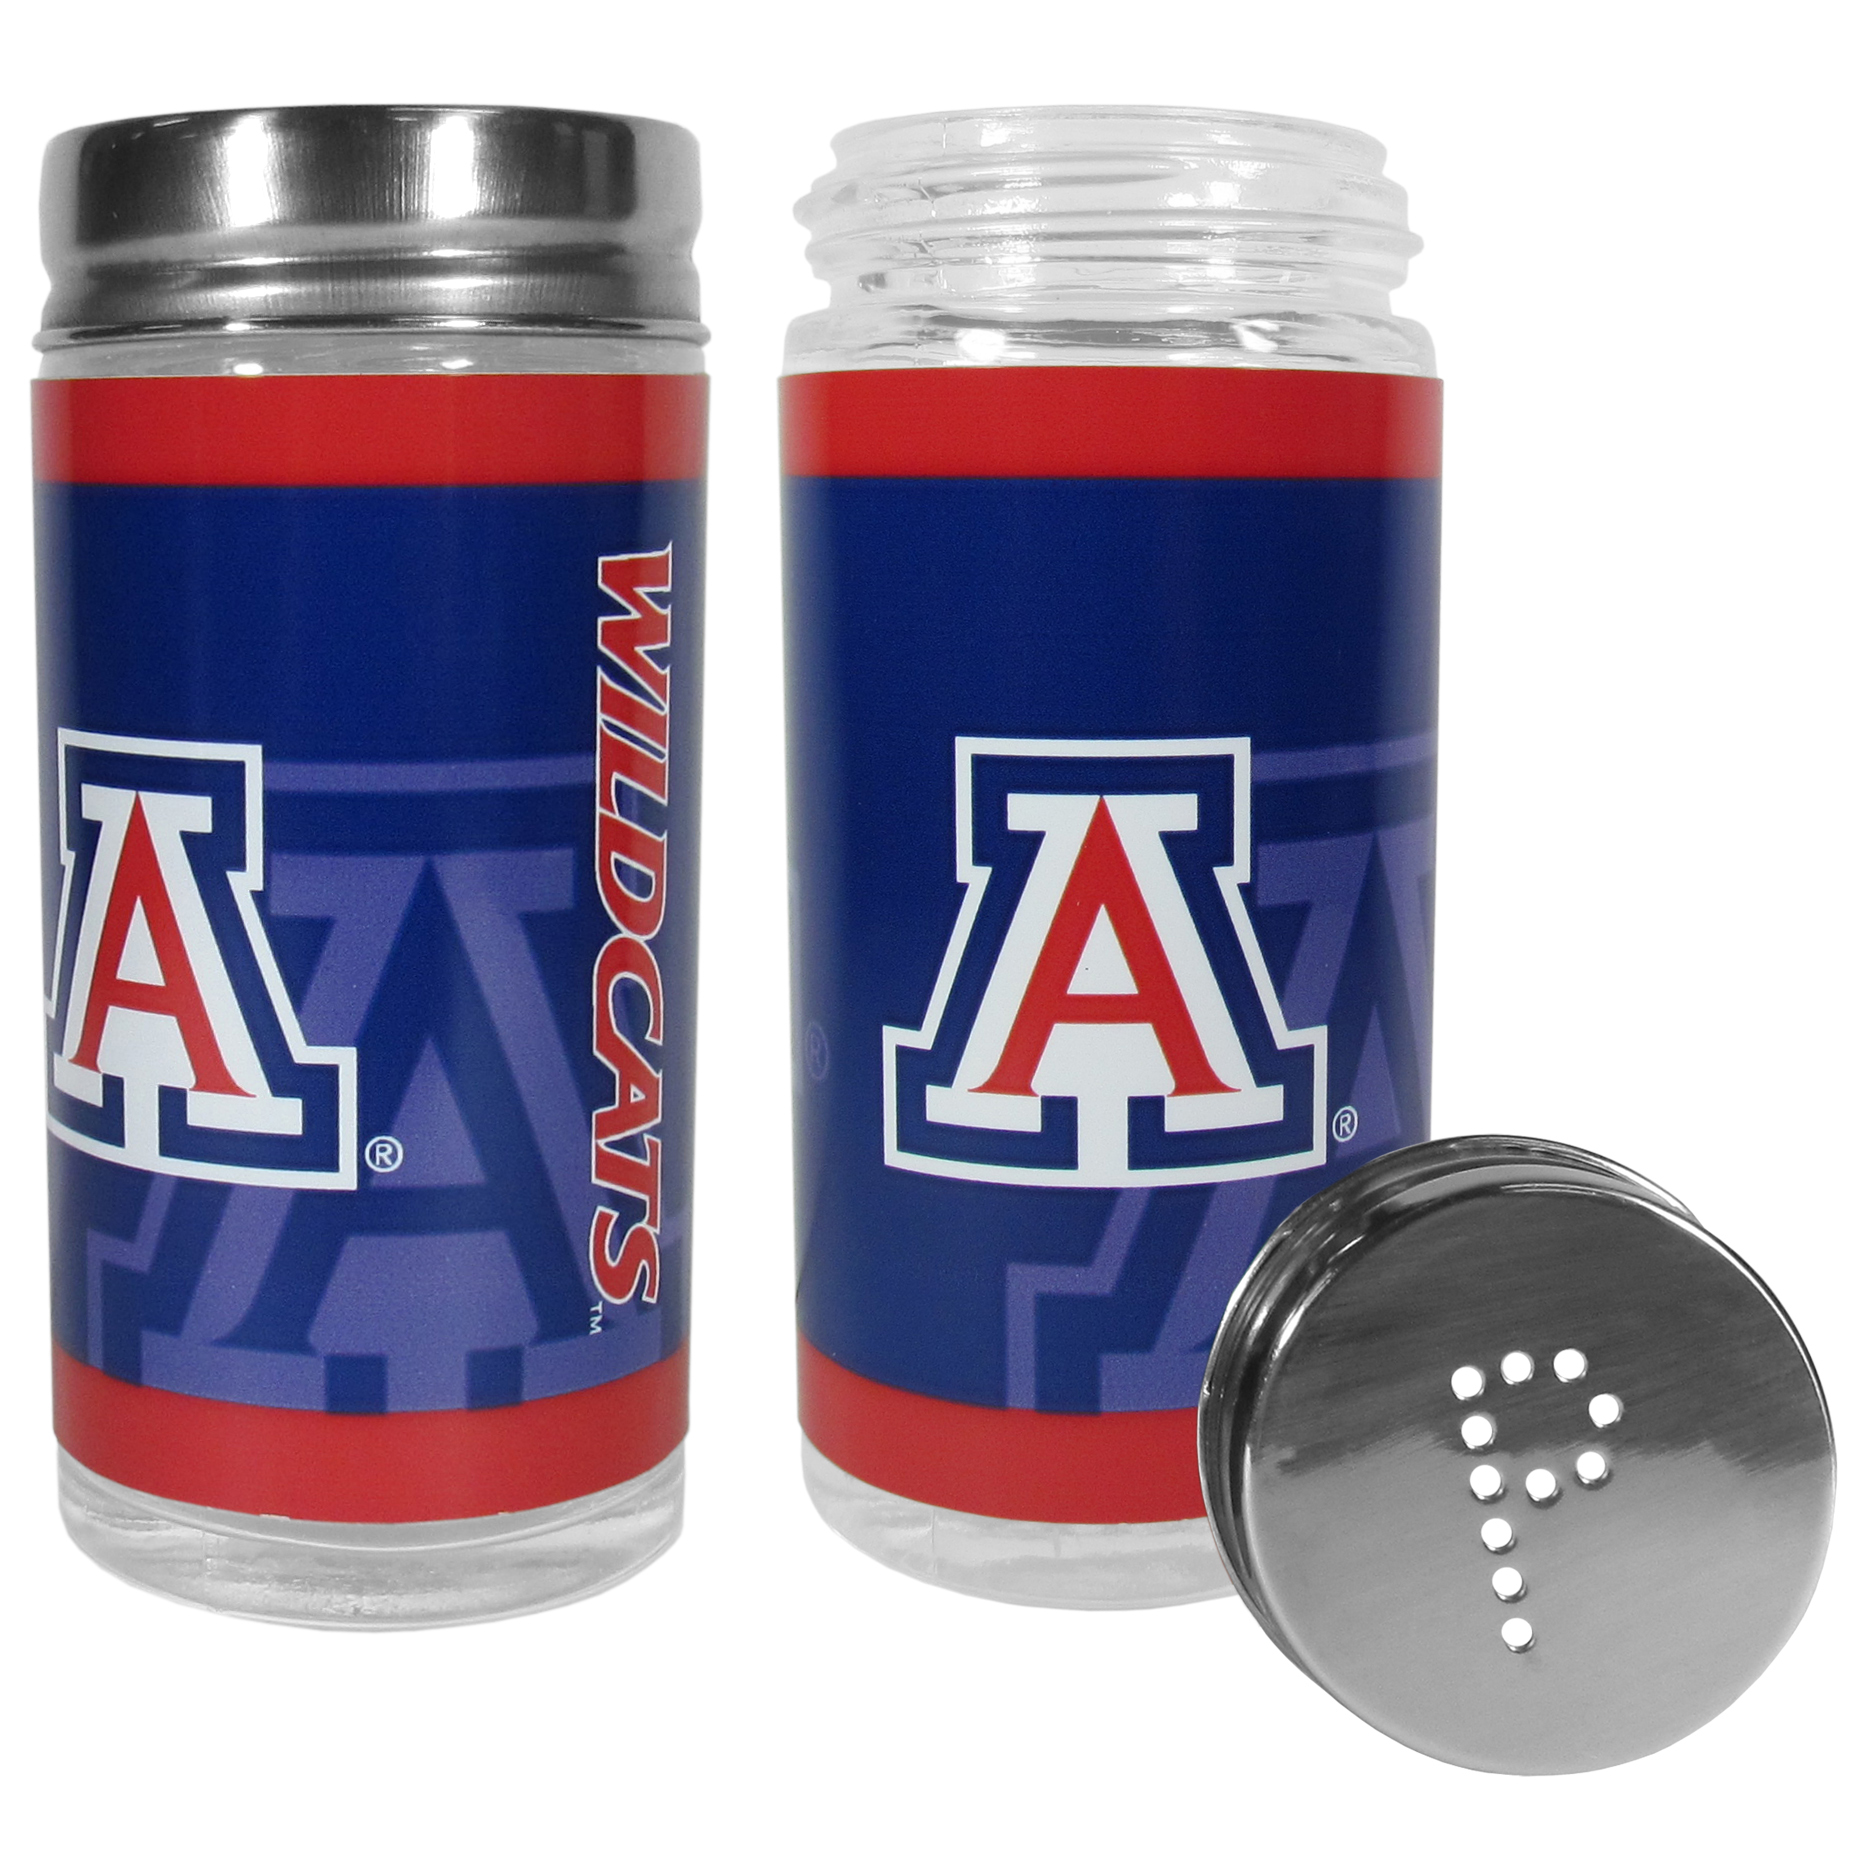 Arizona Wildcats Tailgater Salt and Pepper Shakers - No tailgate party is complete without your Arizona Wildcats salt & pepper shakers featuring bright team graphics. The glass shakers are 3.75 inches tall and the screw top lids have holes that spell out P and S. These team shakers are a great grill accessory whether you are barbecuing on the patio, picnicing or having a game day party.